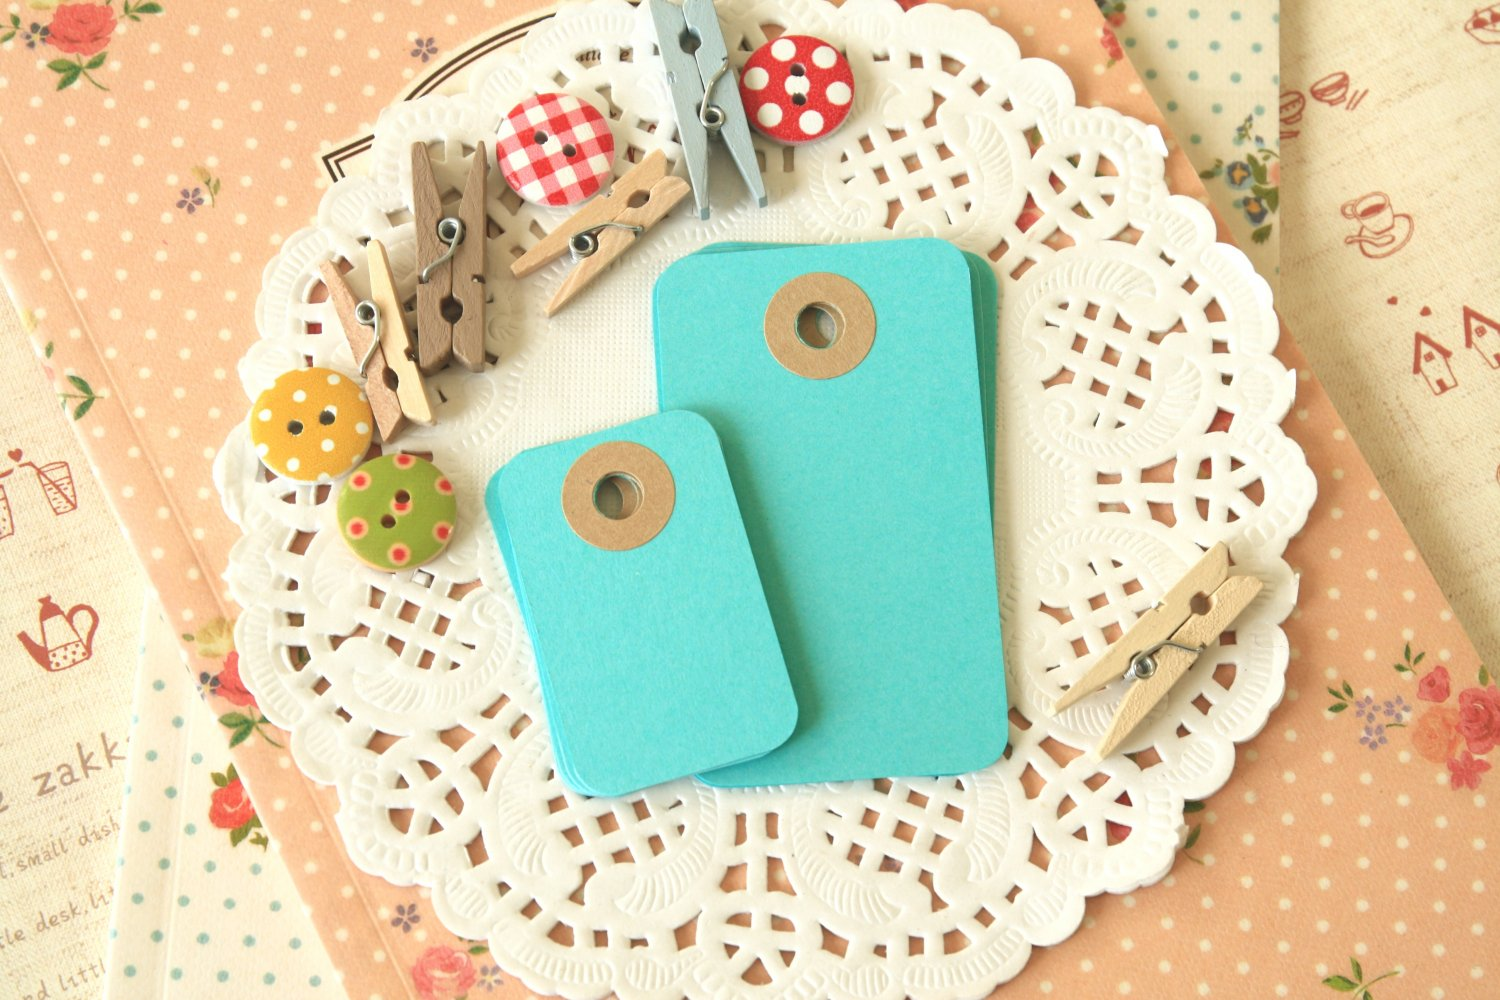 Seagrass Aqua petite rounded gift tags